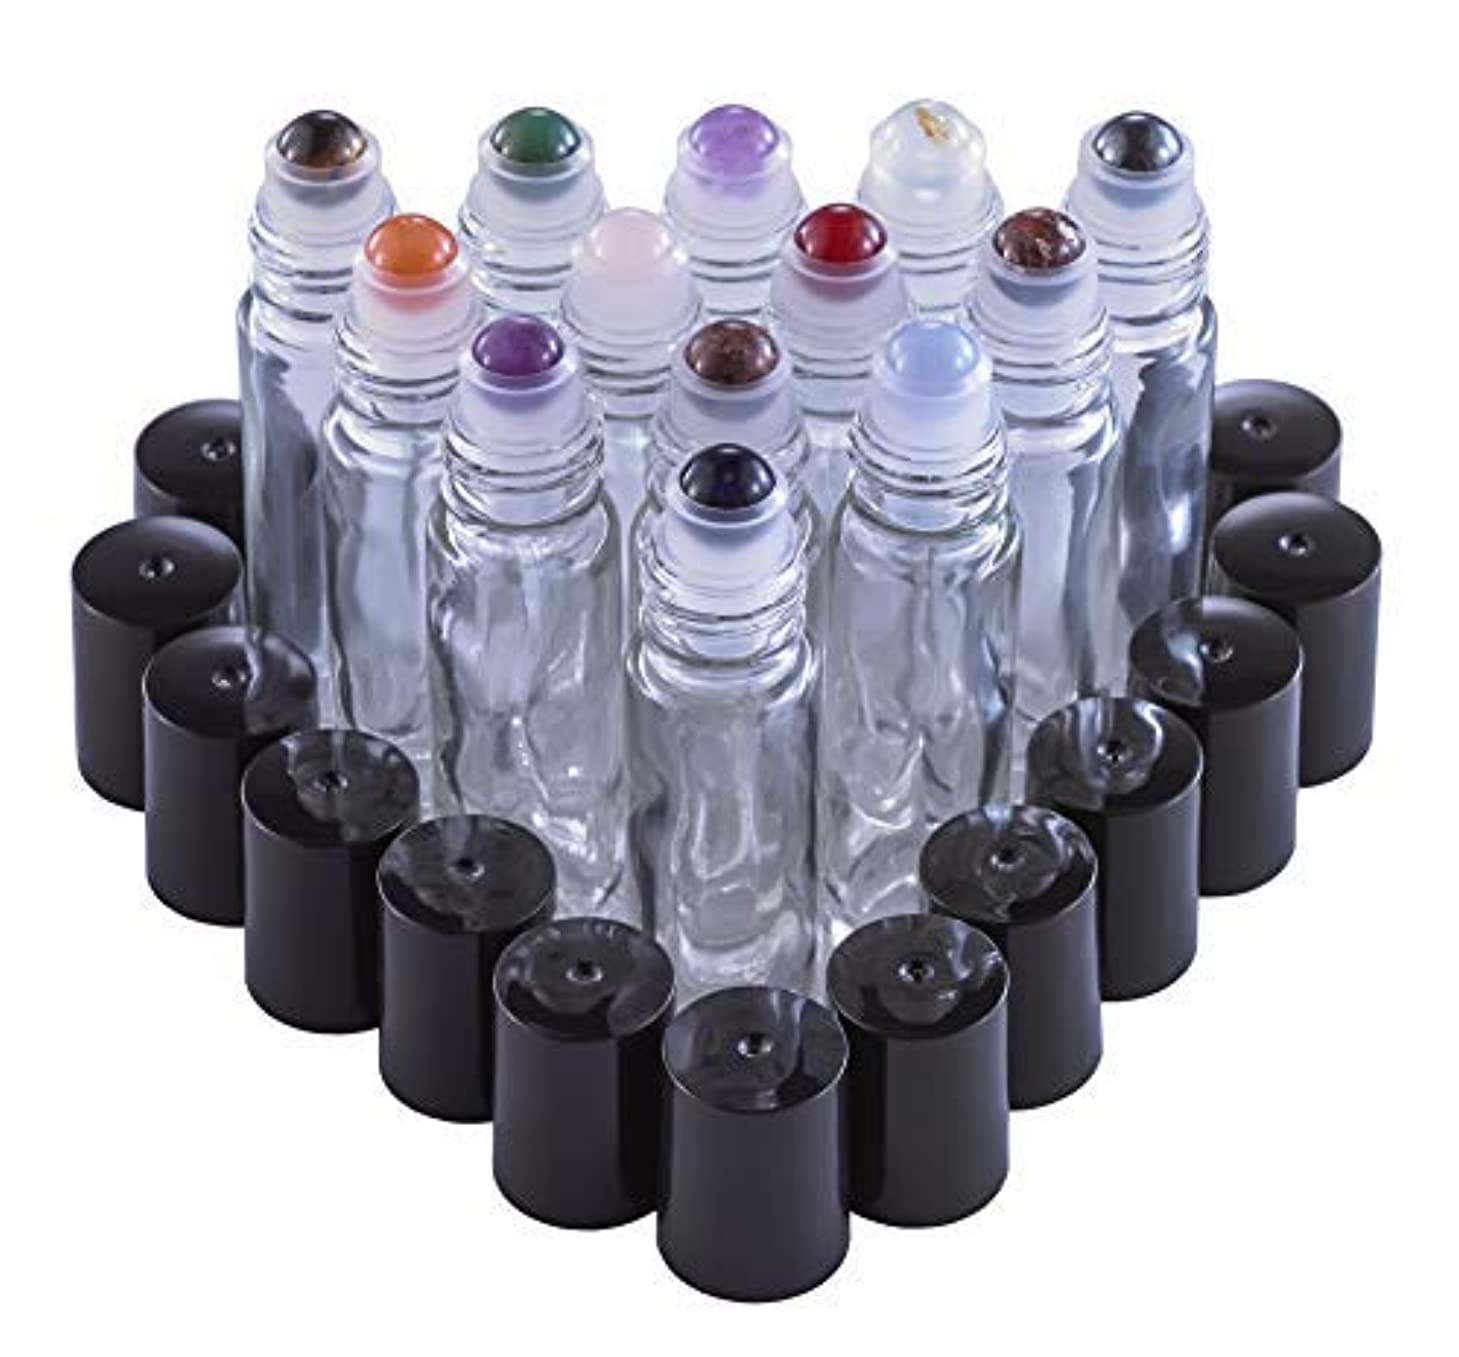 段階削除するわずかにGemstone Roller Balls For Essential Oils - 13 Beautiful Glass Roller Bottles With Precious Gemstones and Crystals...